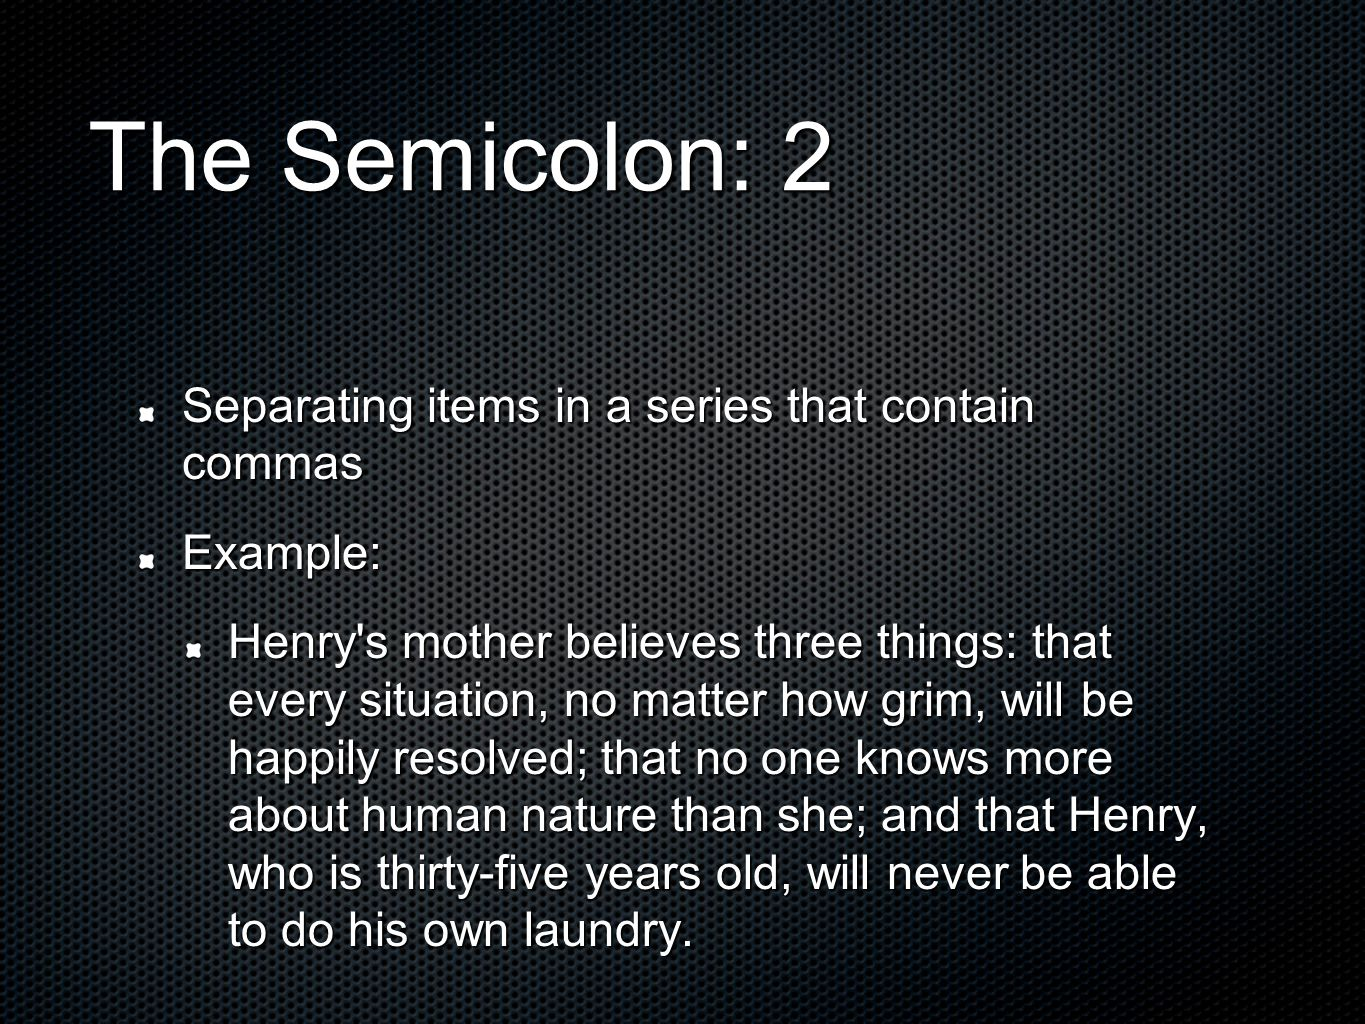 The Semicolon: 2 Separating items in a series that contain commas Example: Henry s mother believes three things: that every situation, no matter how grim, will be happily resolved; that no one knows more about human nature than she; and that Henry, who is thirty-five years old, will never be able to do his own laundry.